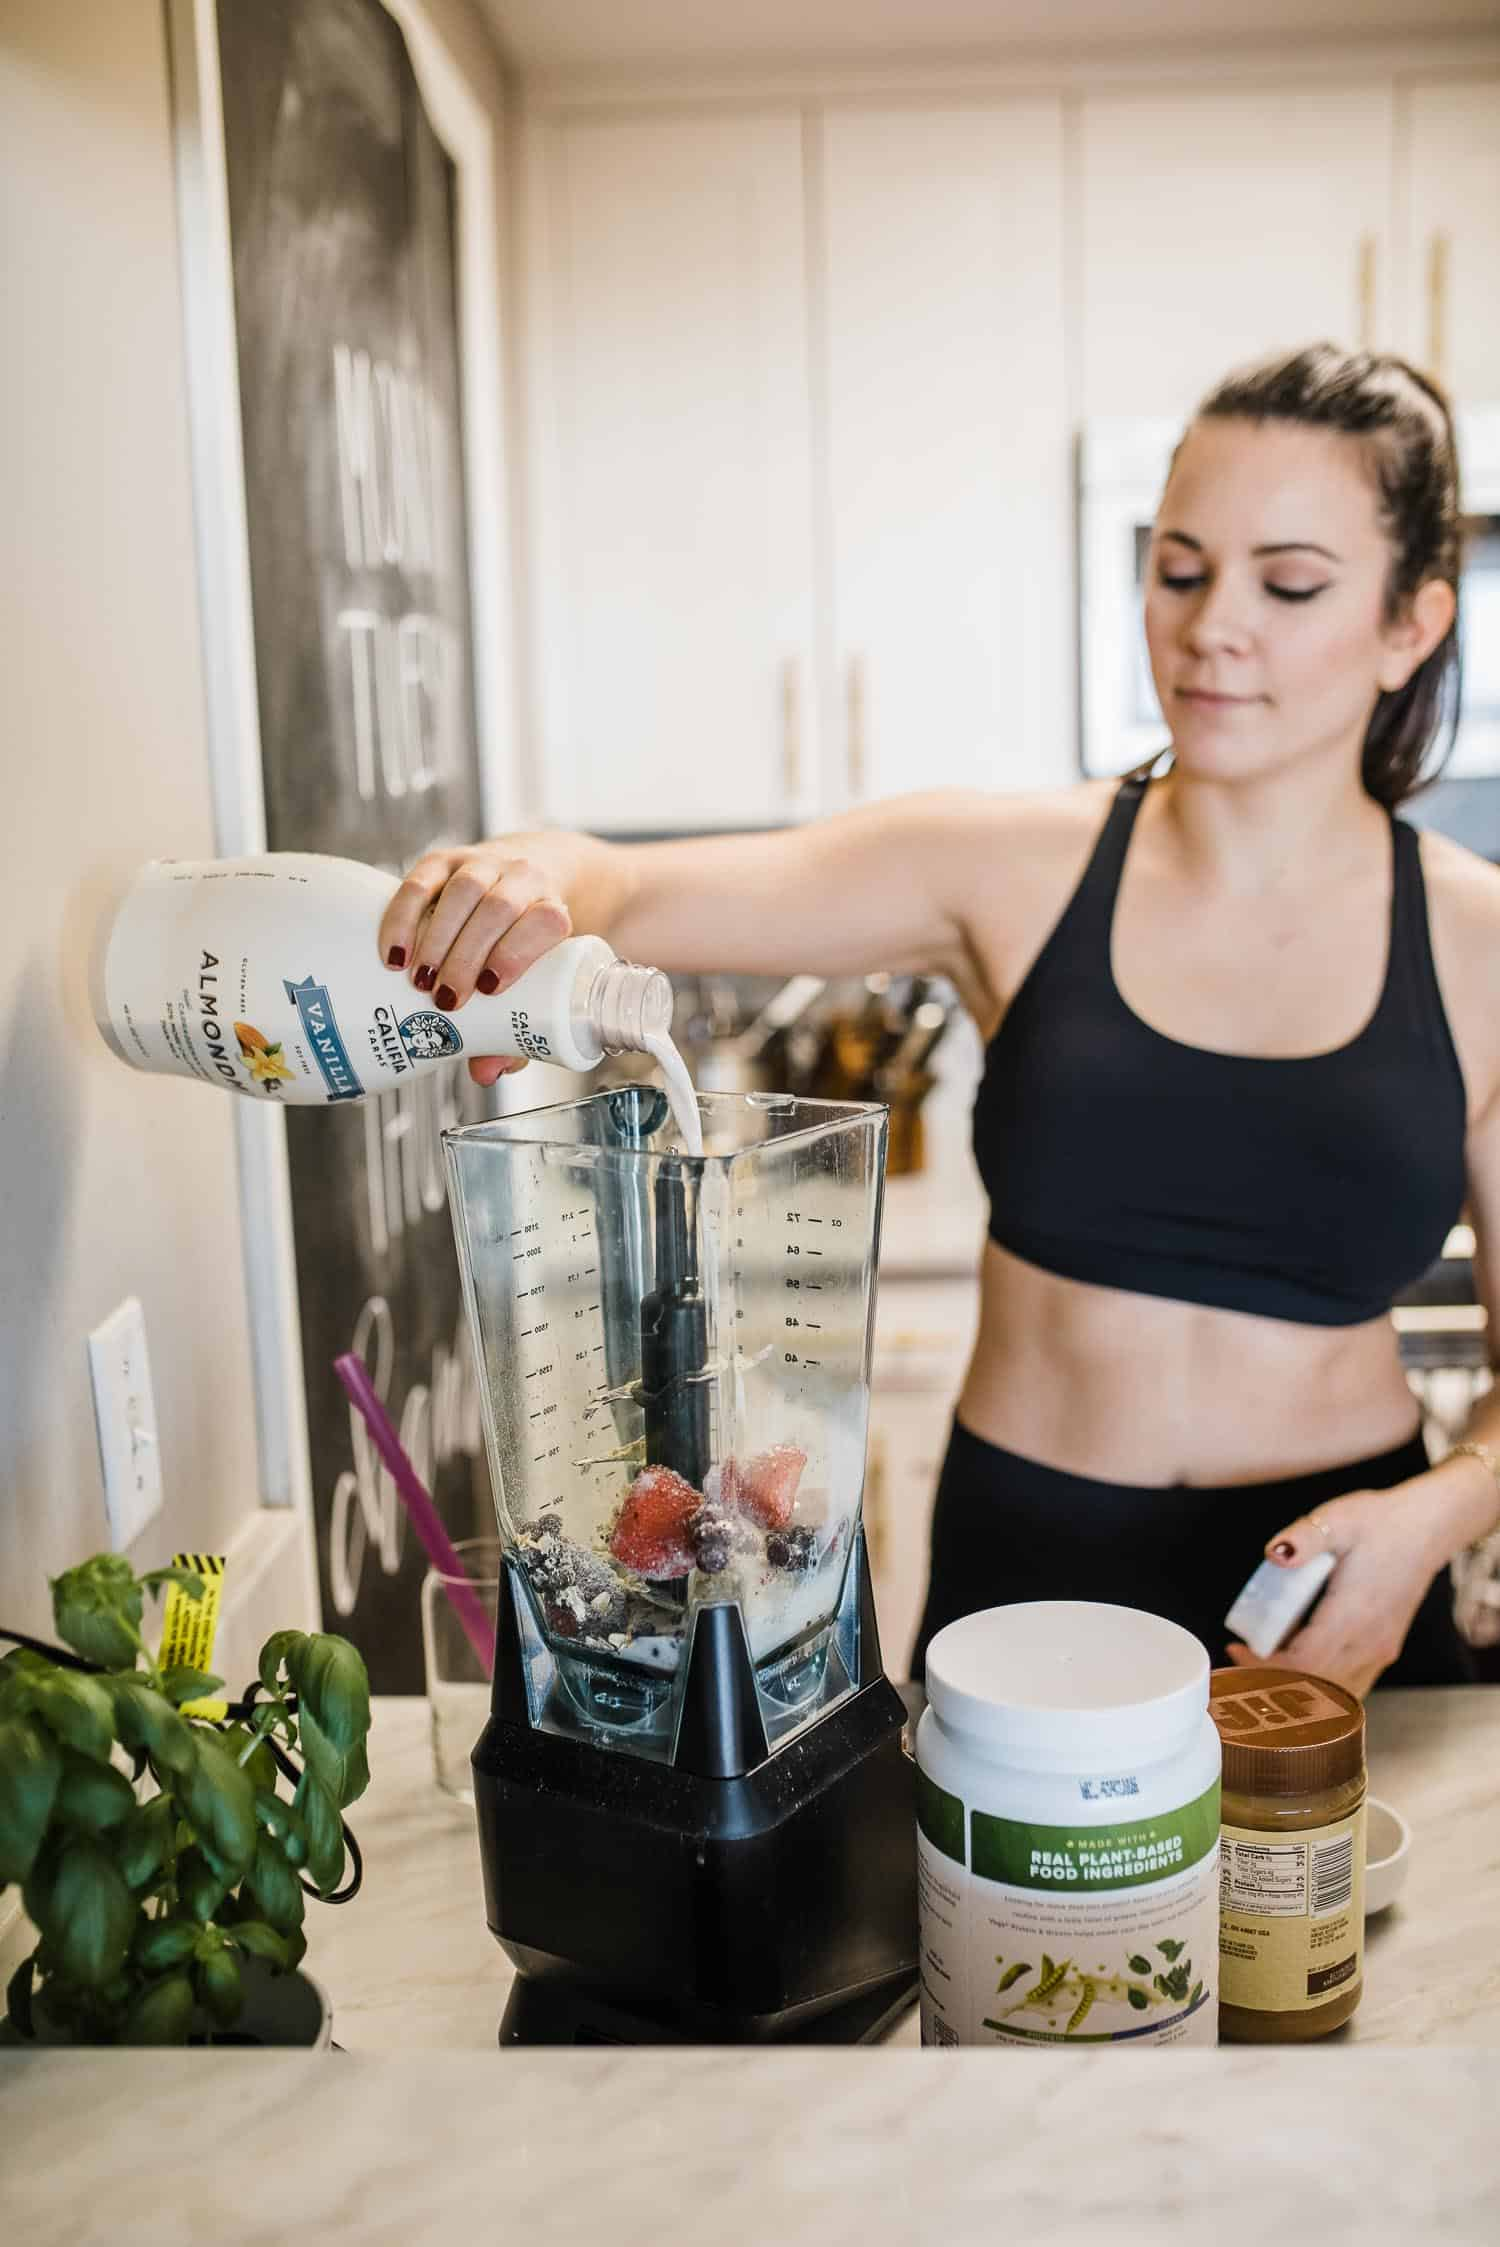 Jessica Camerata is making a breakfast smoothie with almond milk